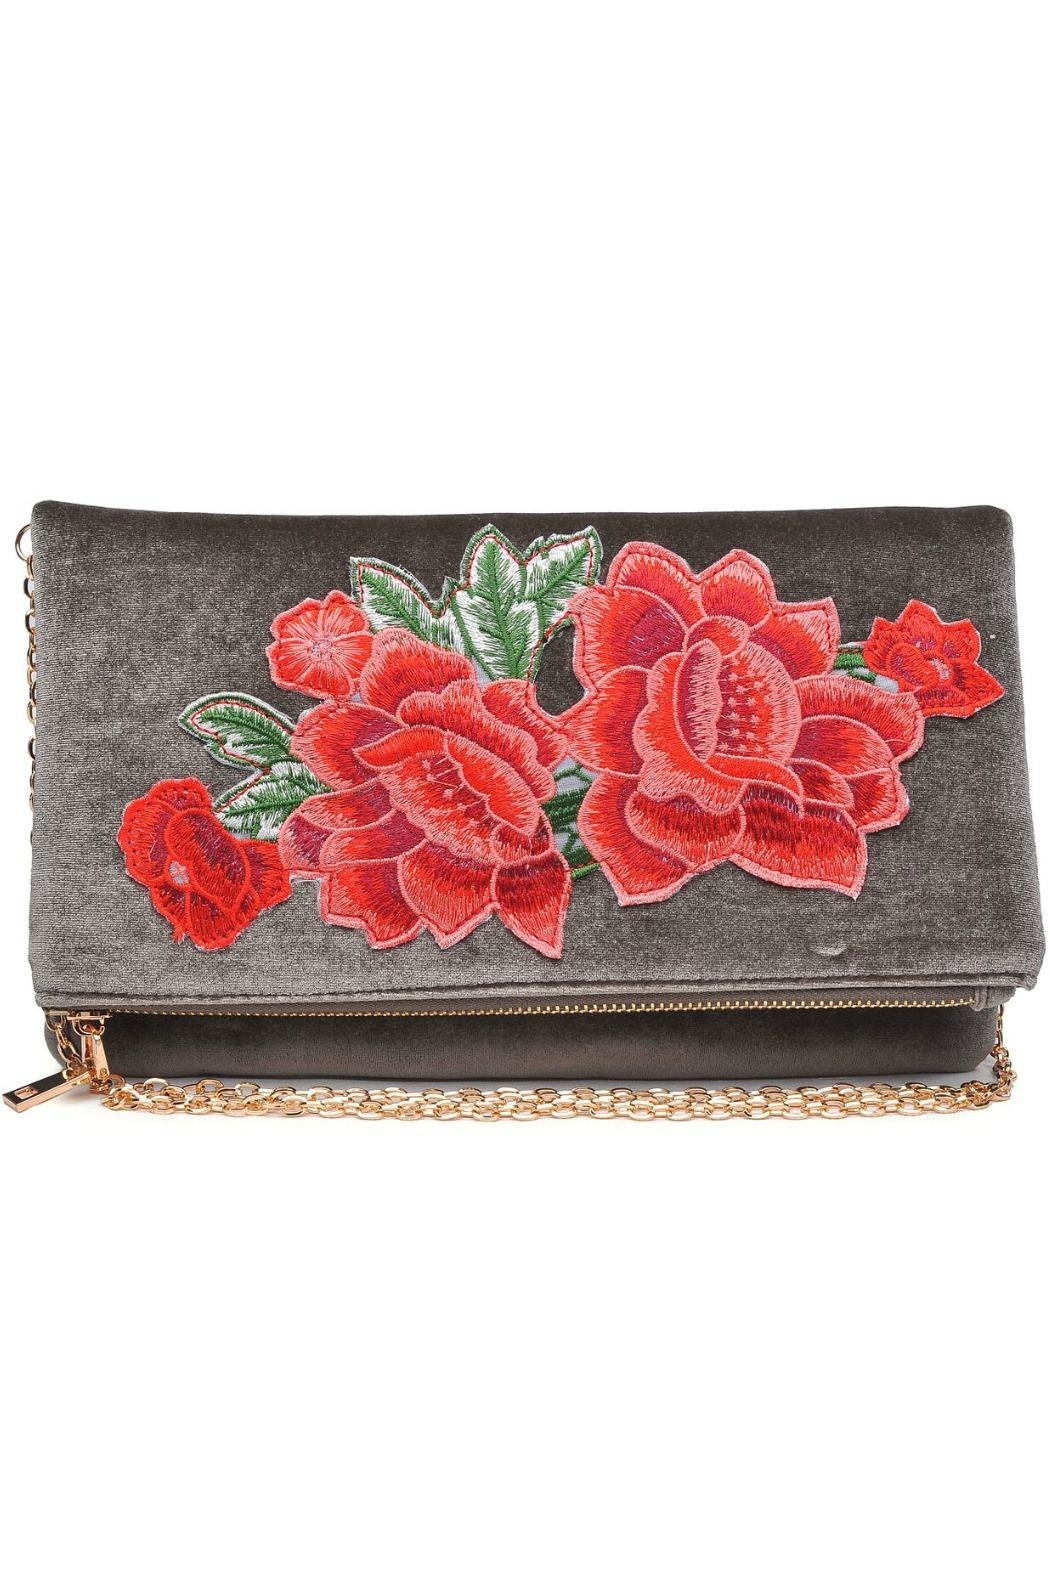 Urban Expressions Velvet Embroidered Clutch - Front Full Image